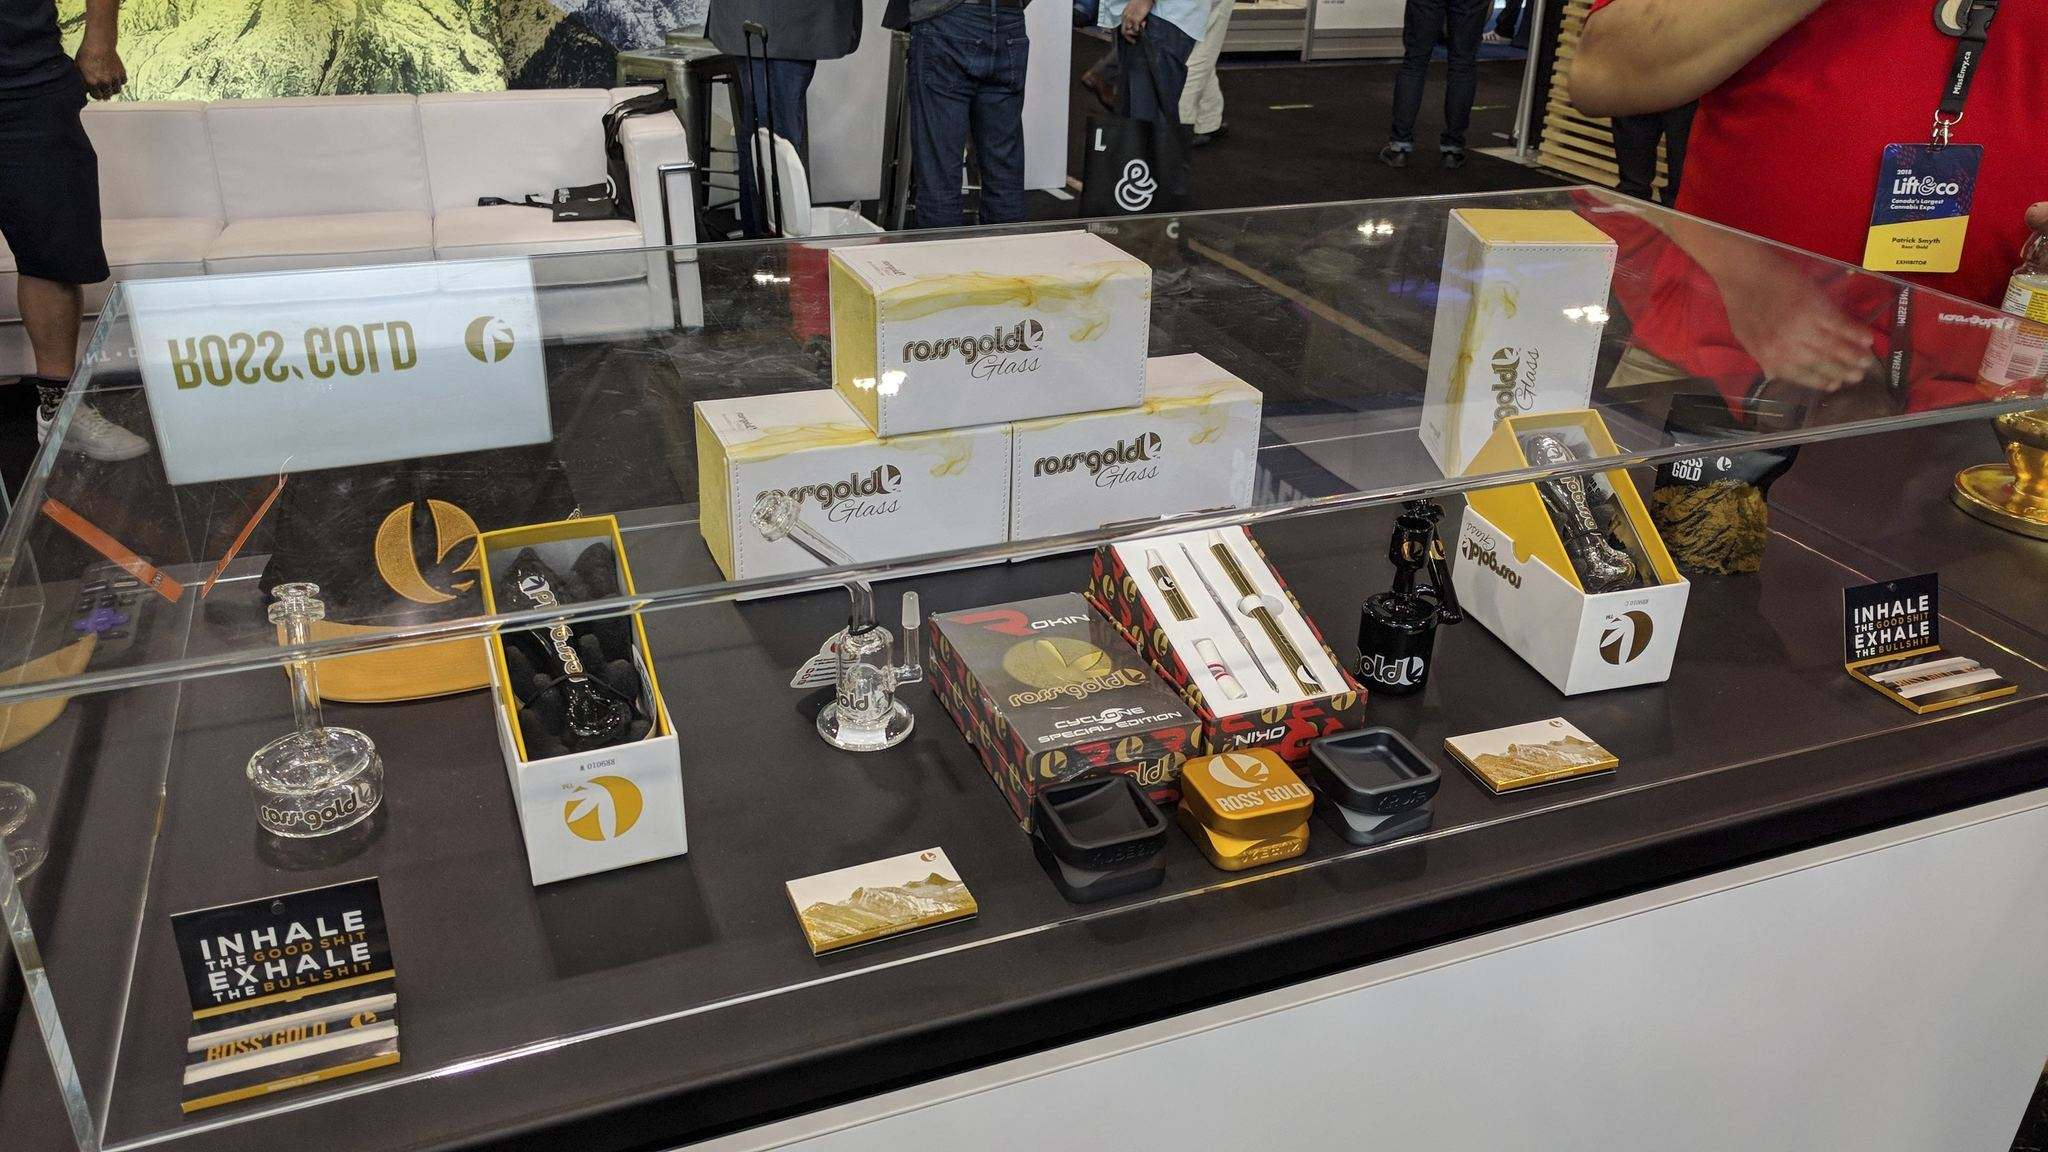 Rebagliati&#39;s &#39;Ross&#39; Gold&#39; brand sells high-end cannabis accessories such as bongs, grinders, dab rigs and rolling papers. (Solomon Israel/The Leaf News)</p>